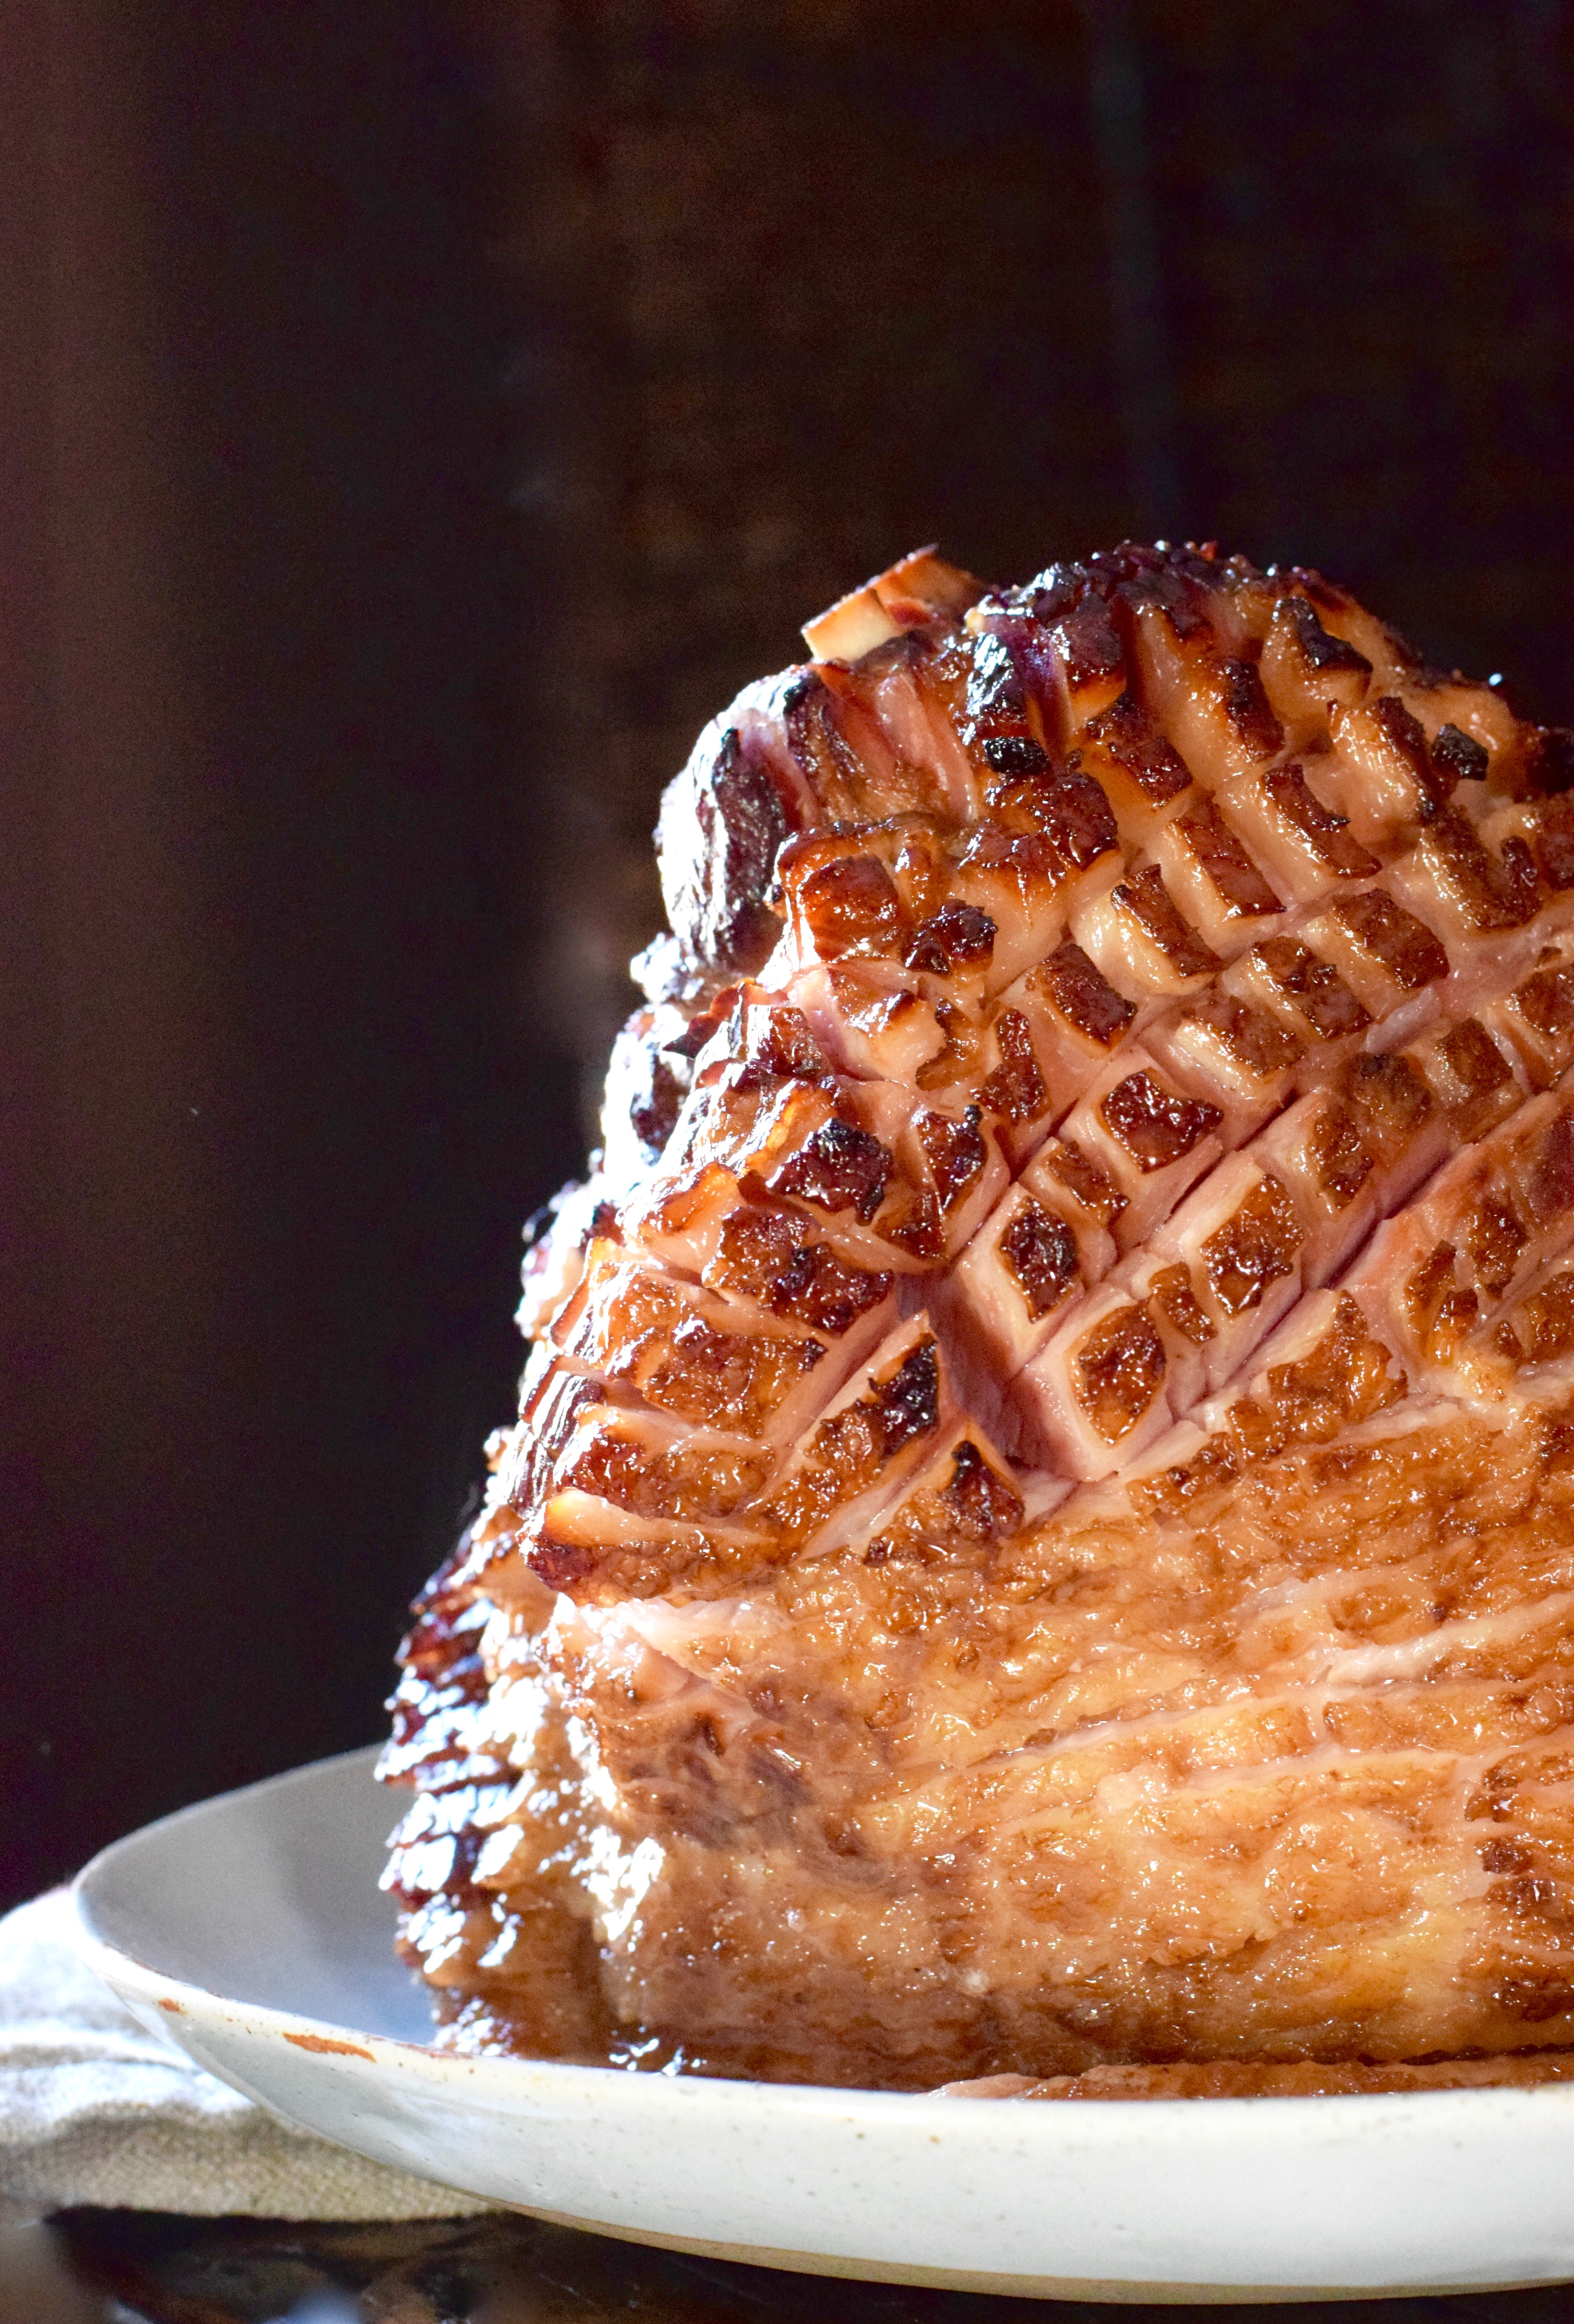 Forum on this topic: Baked Ham in Mulled Cider Recipe, baked-ham-in-mulled-cider-recipe/